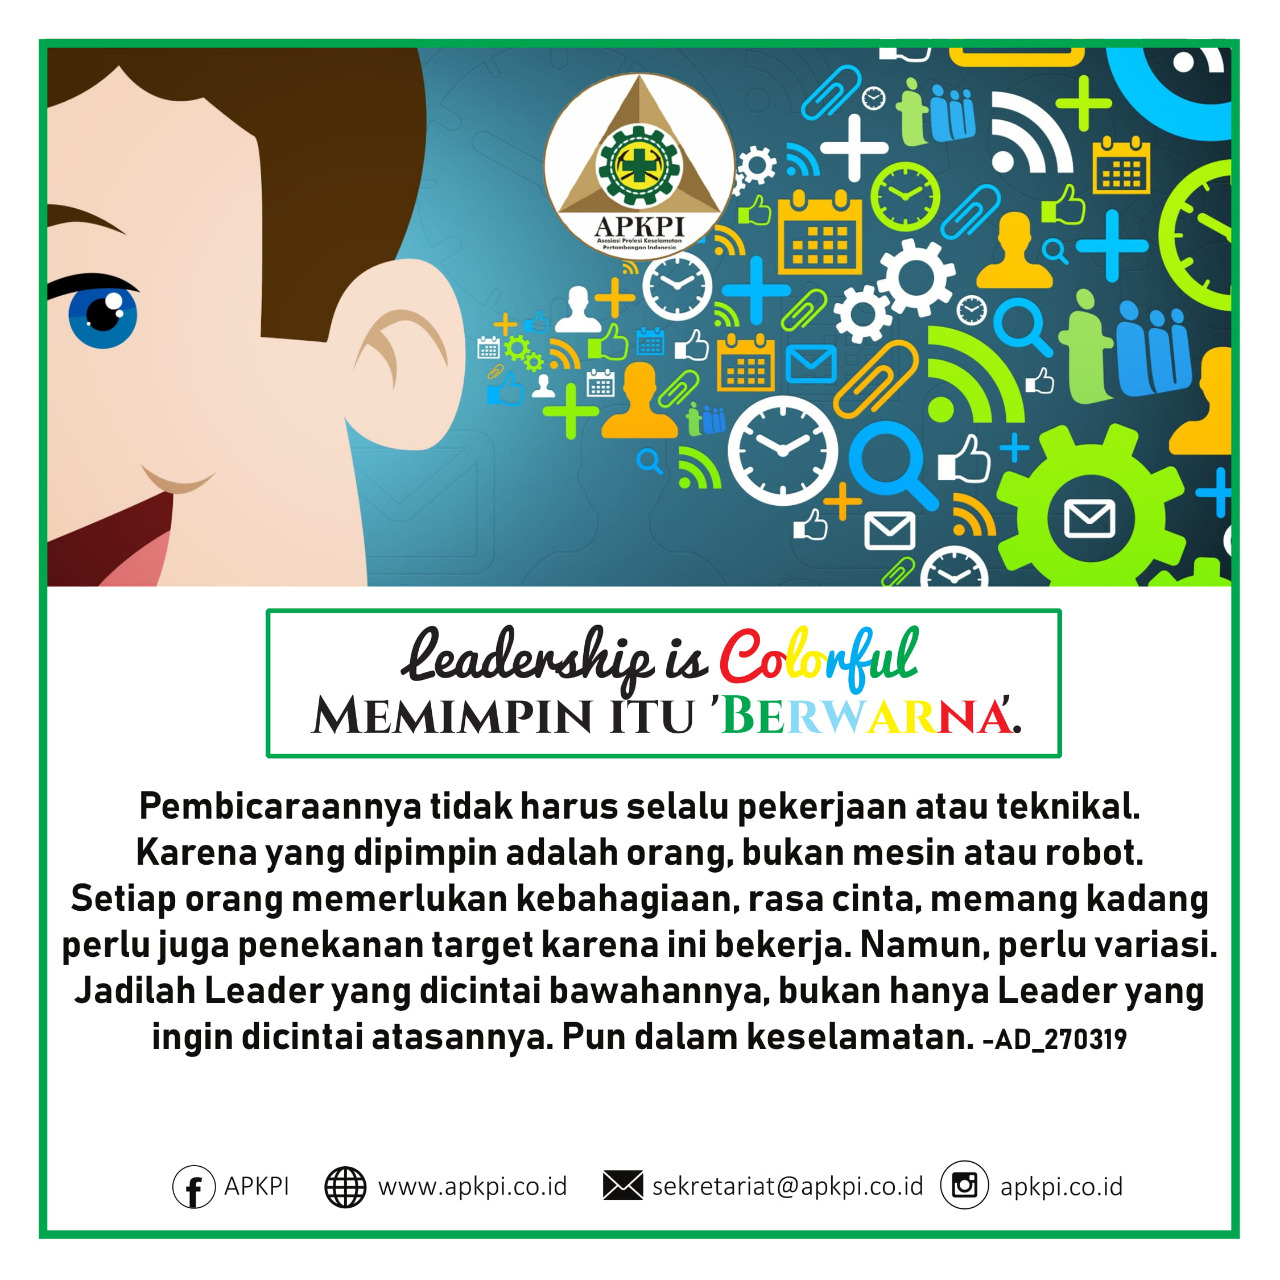 APKPI Quotes Of The Day #026